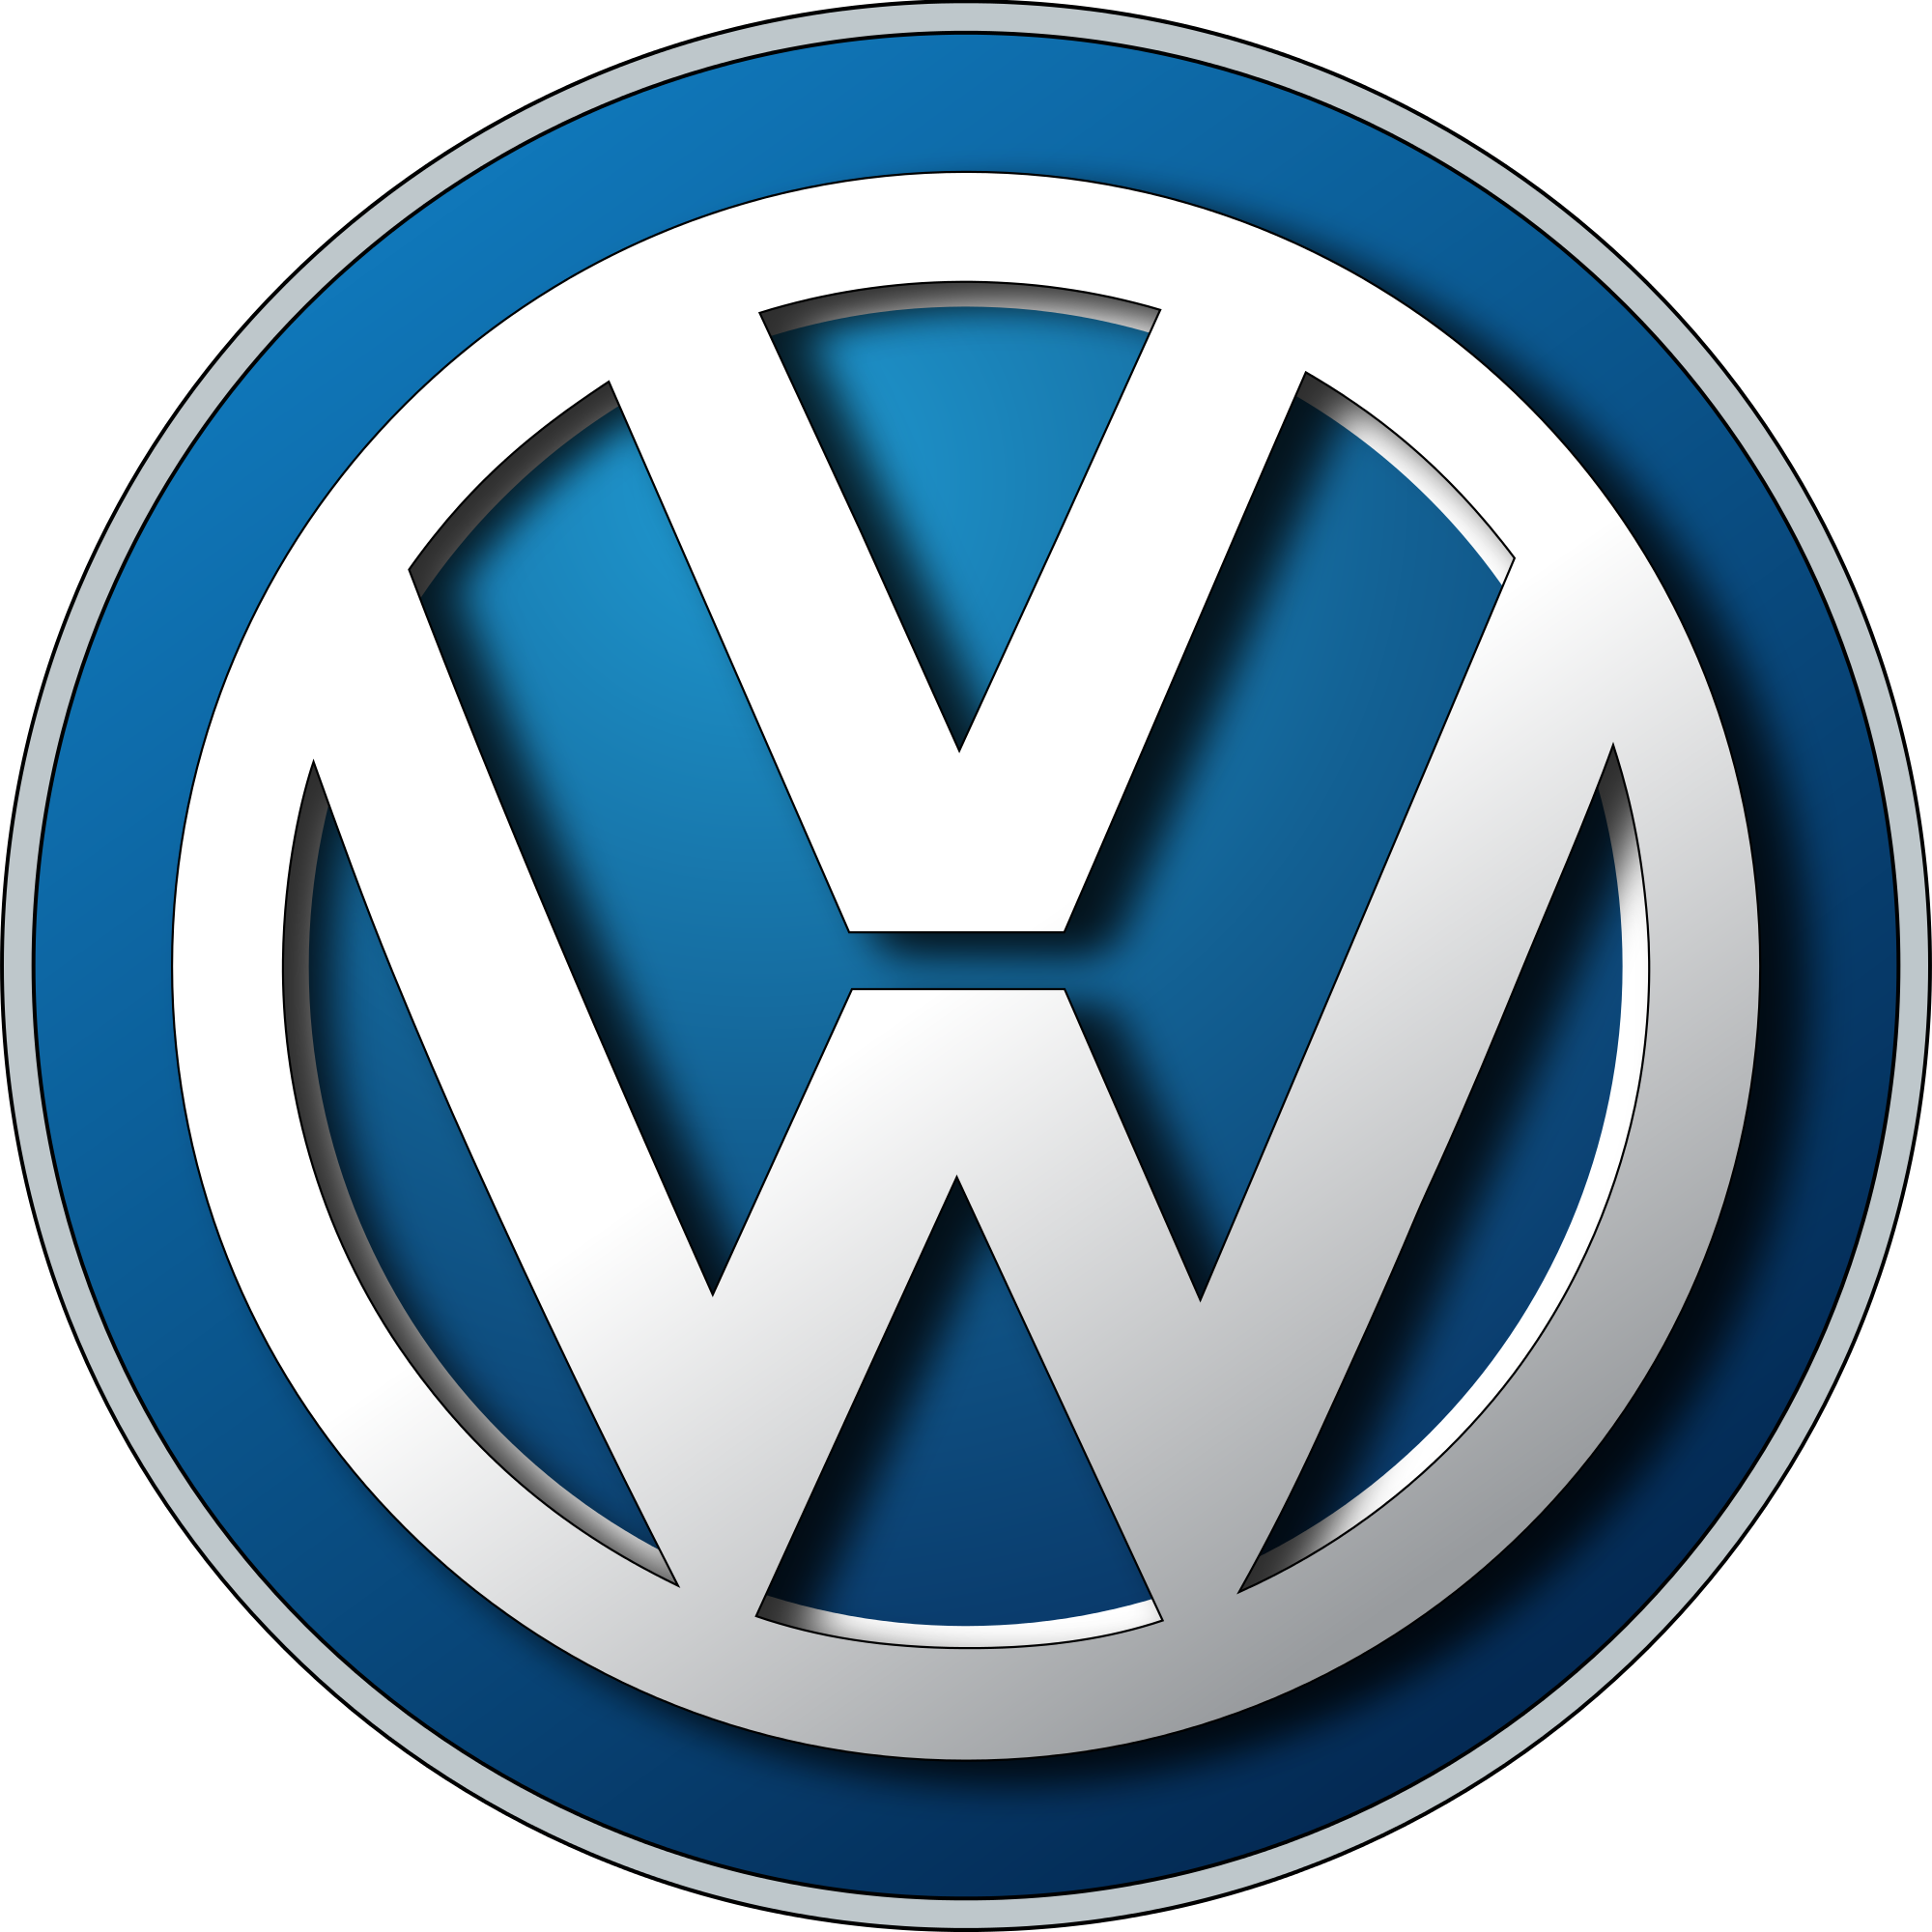 Strong Leadership in demand in light of VW emissions scandal